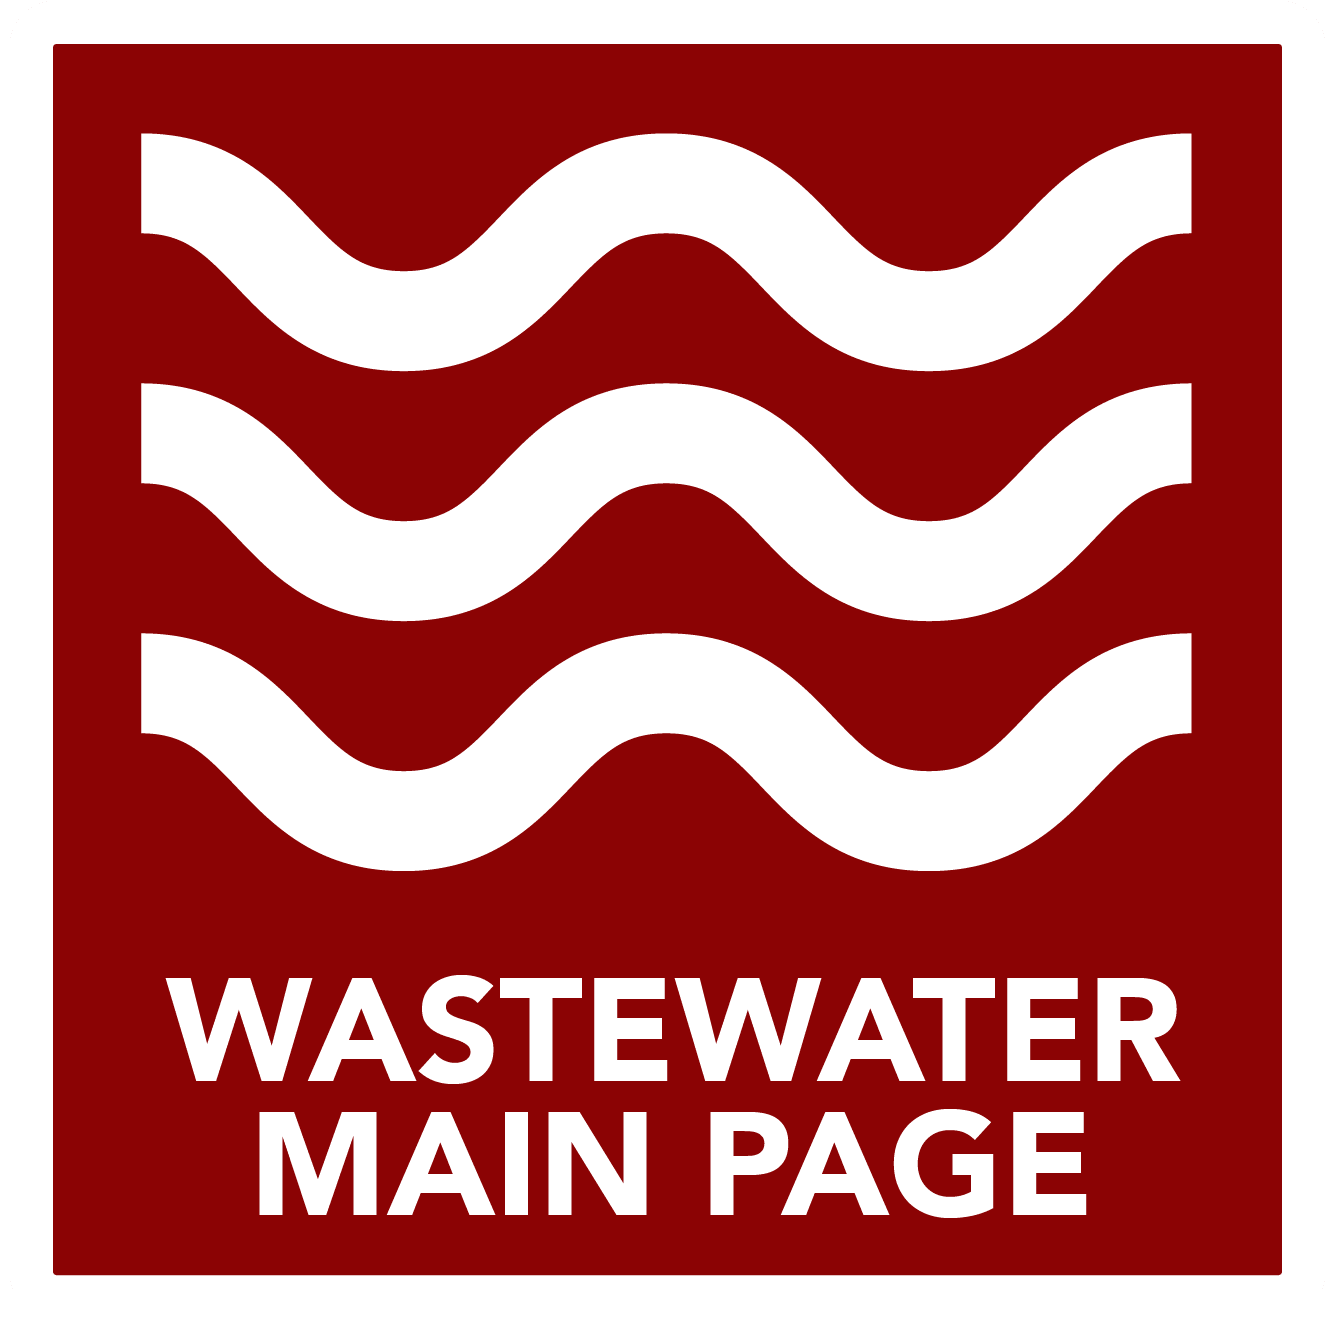 Wastewater Main Page - Button